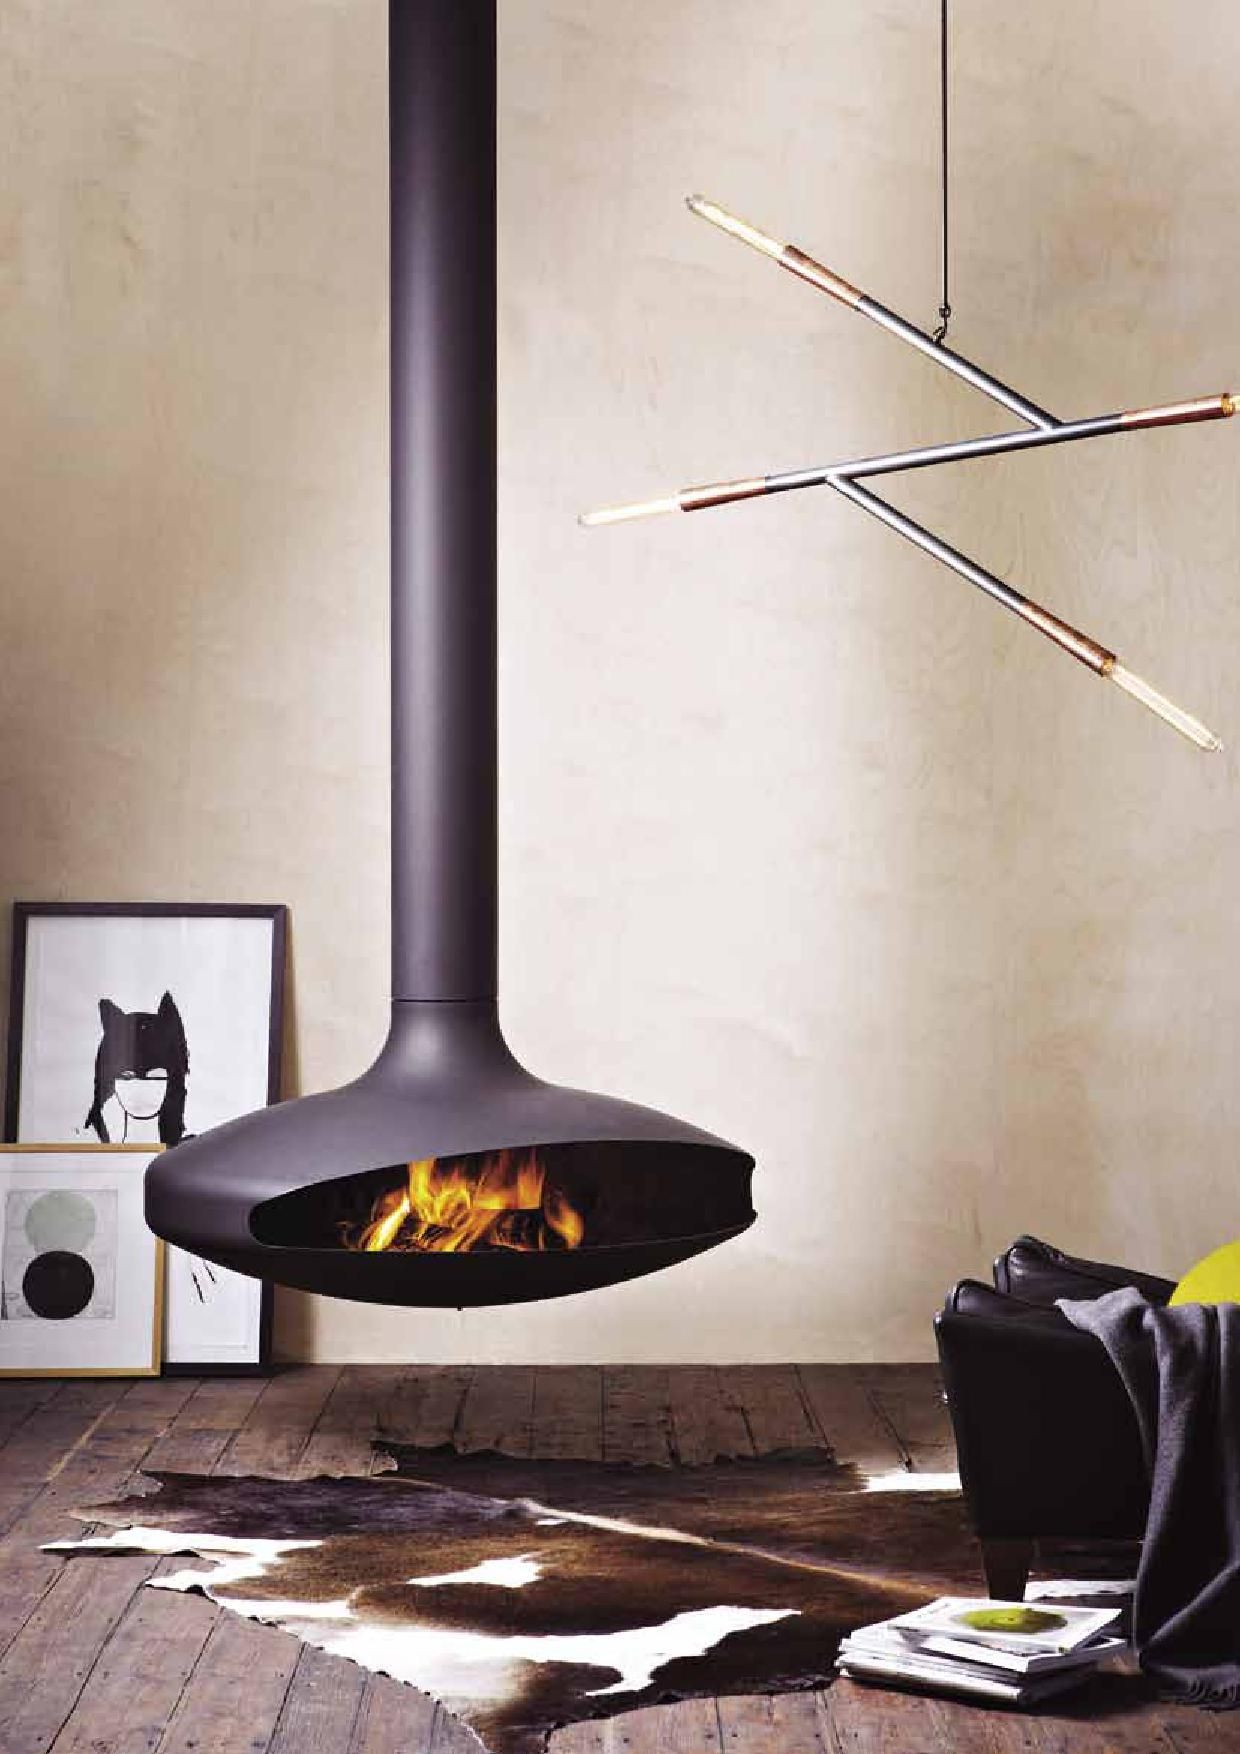 Gyro suspended fireplace by Oblica. Artwork by Emma Cleine of Lumiere Art &  Co and